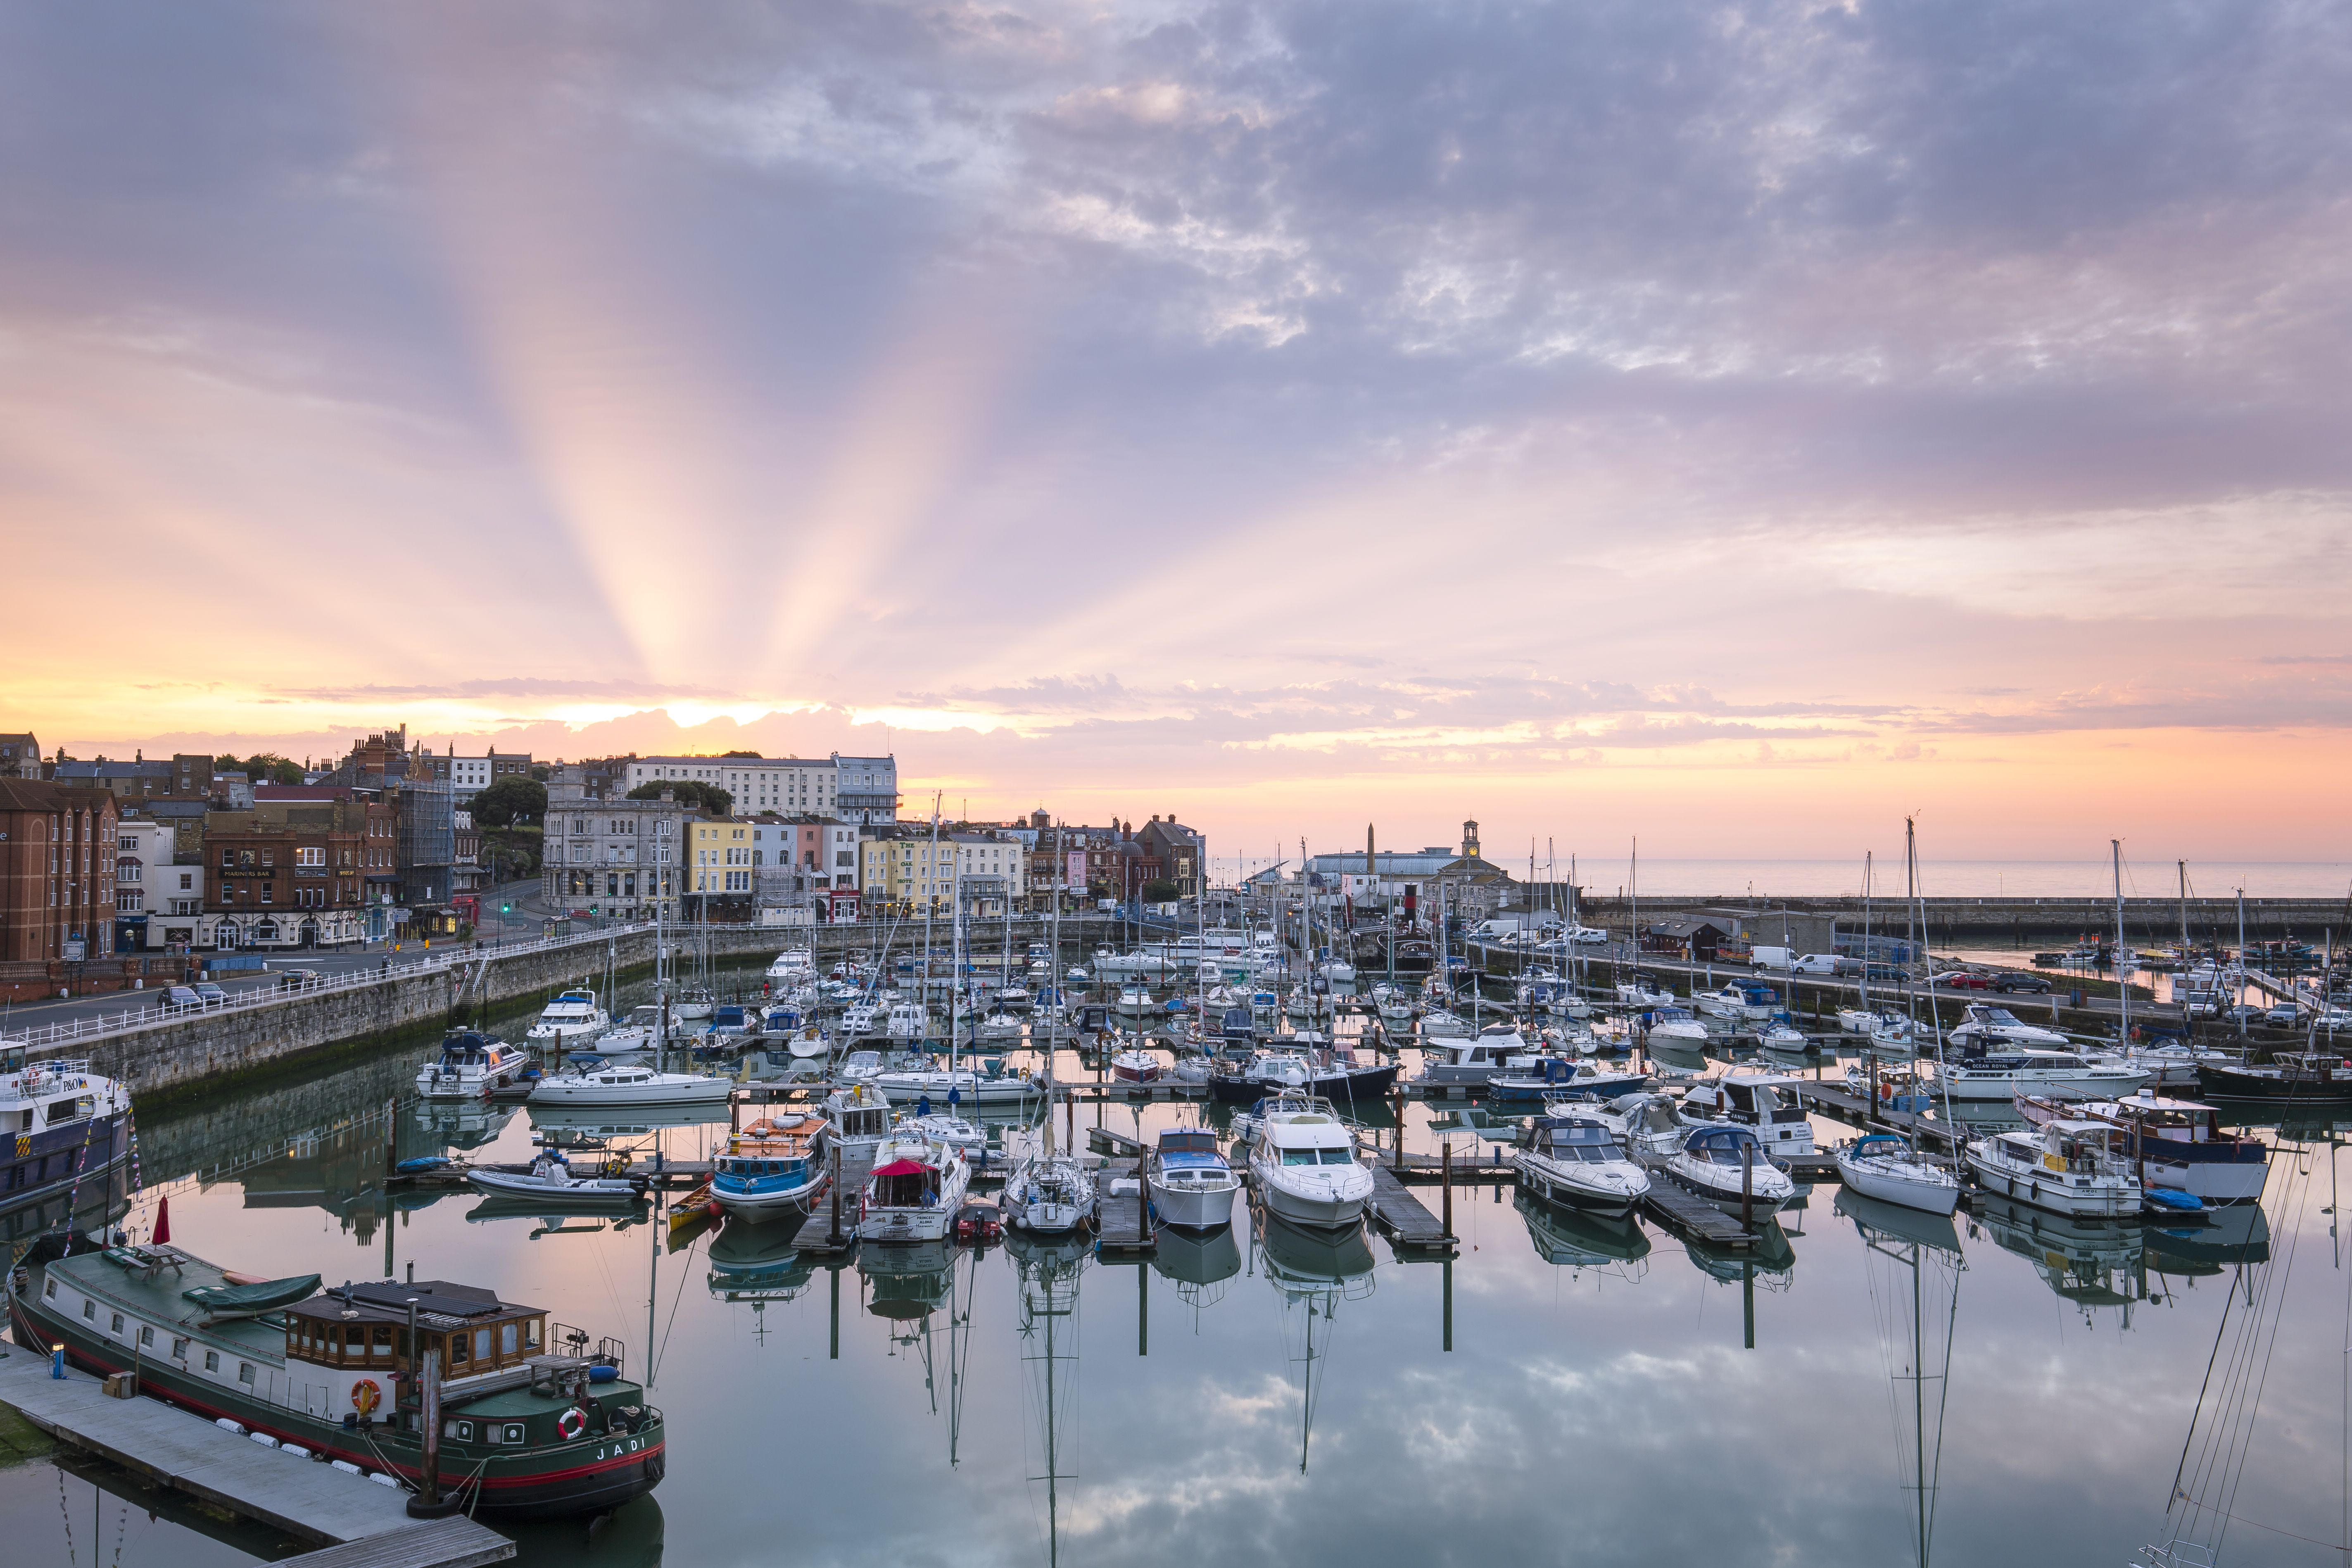 Sunrise at Ramsgate Royal Harbour